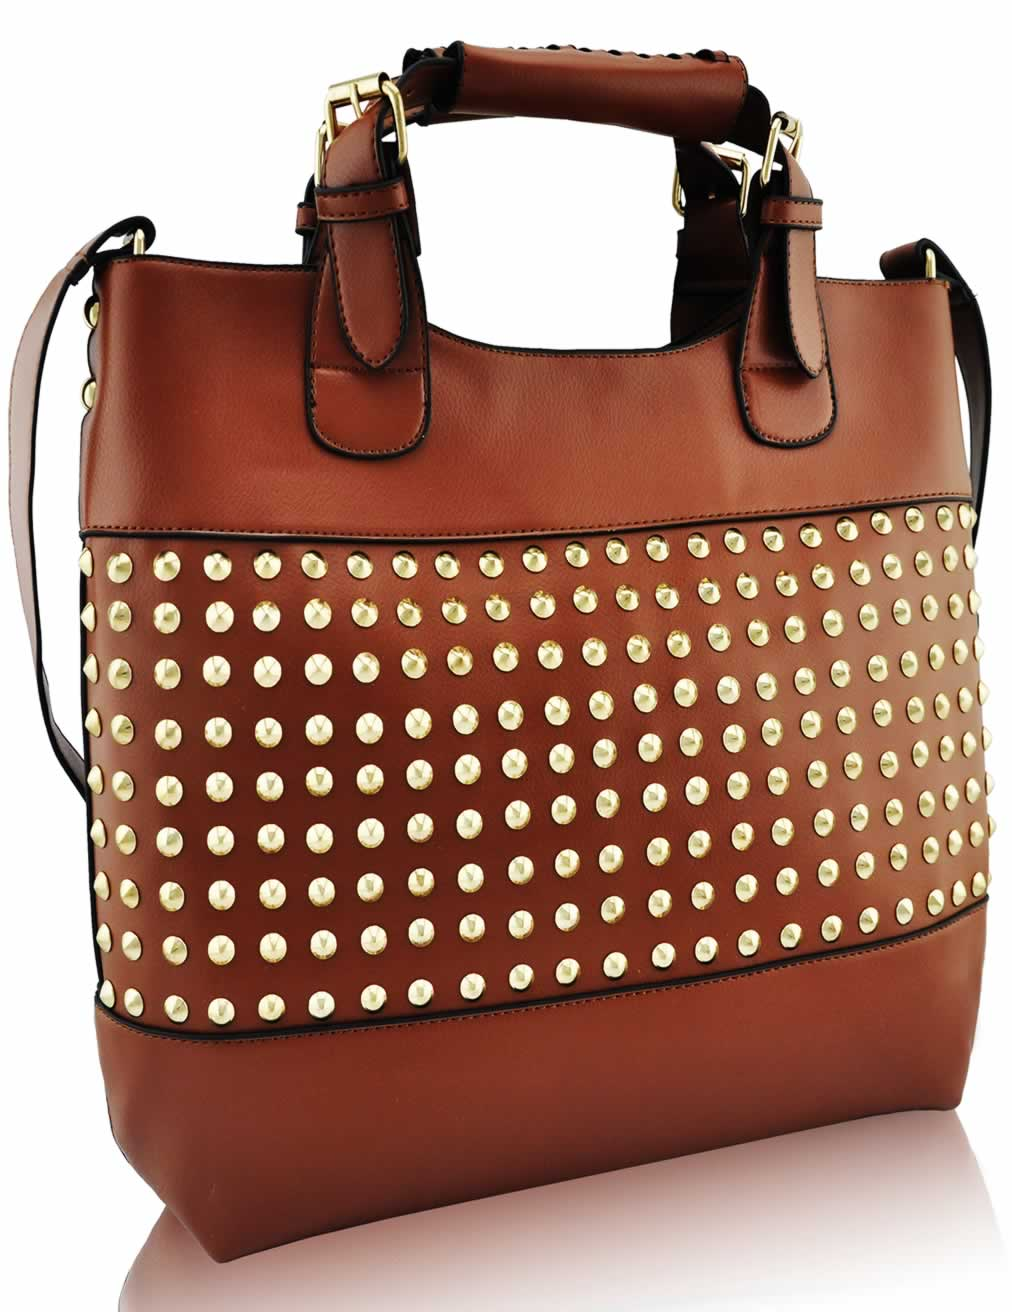 Whole Studded Handbags Fabric Bags Authentic Designer Nicole Lee